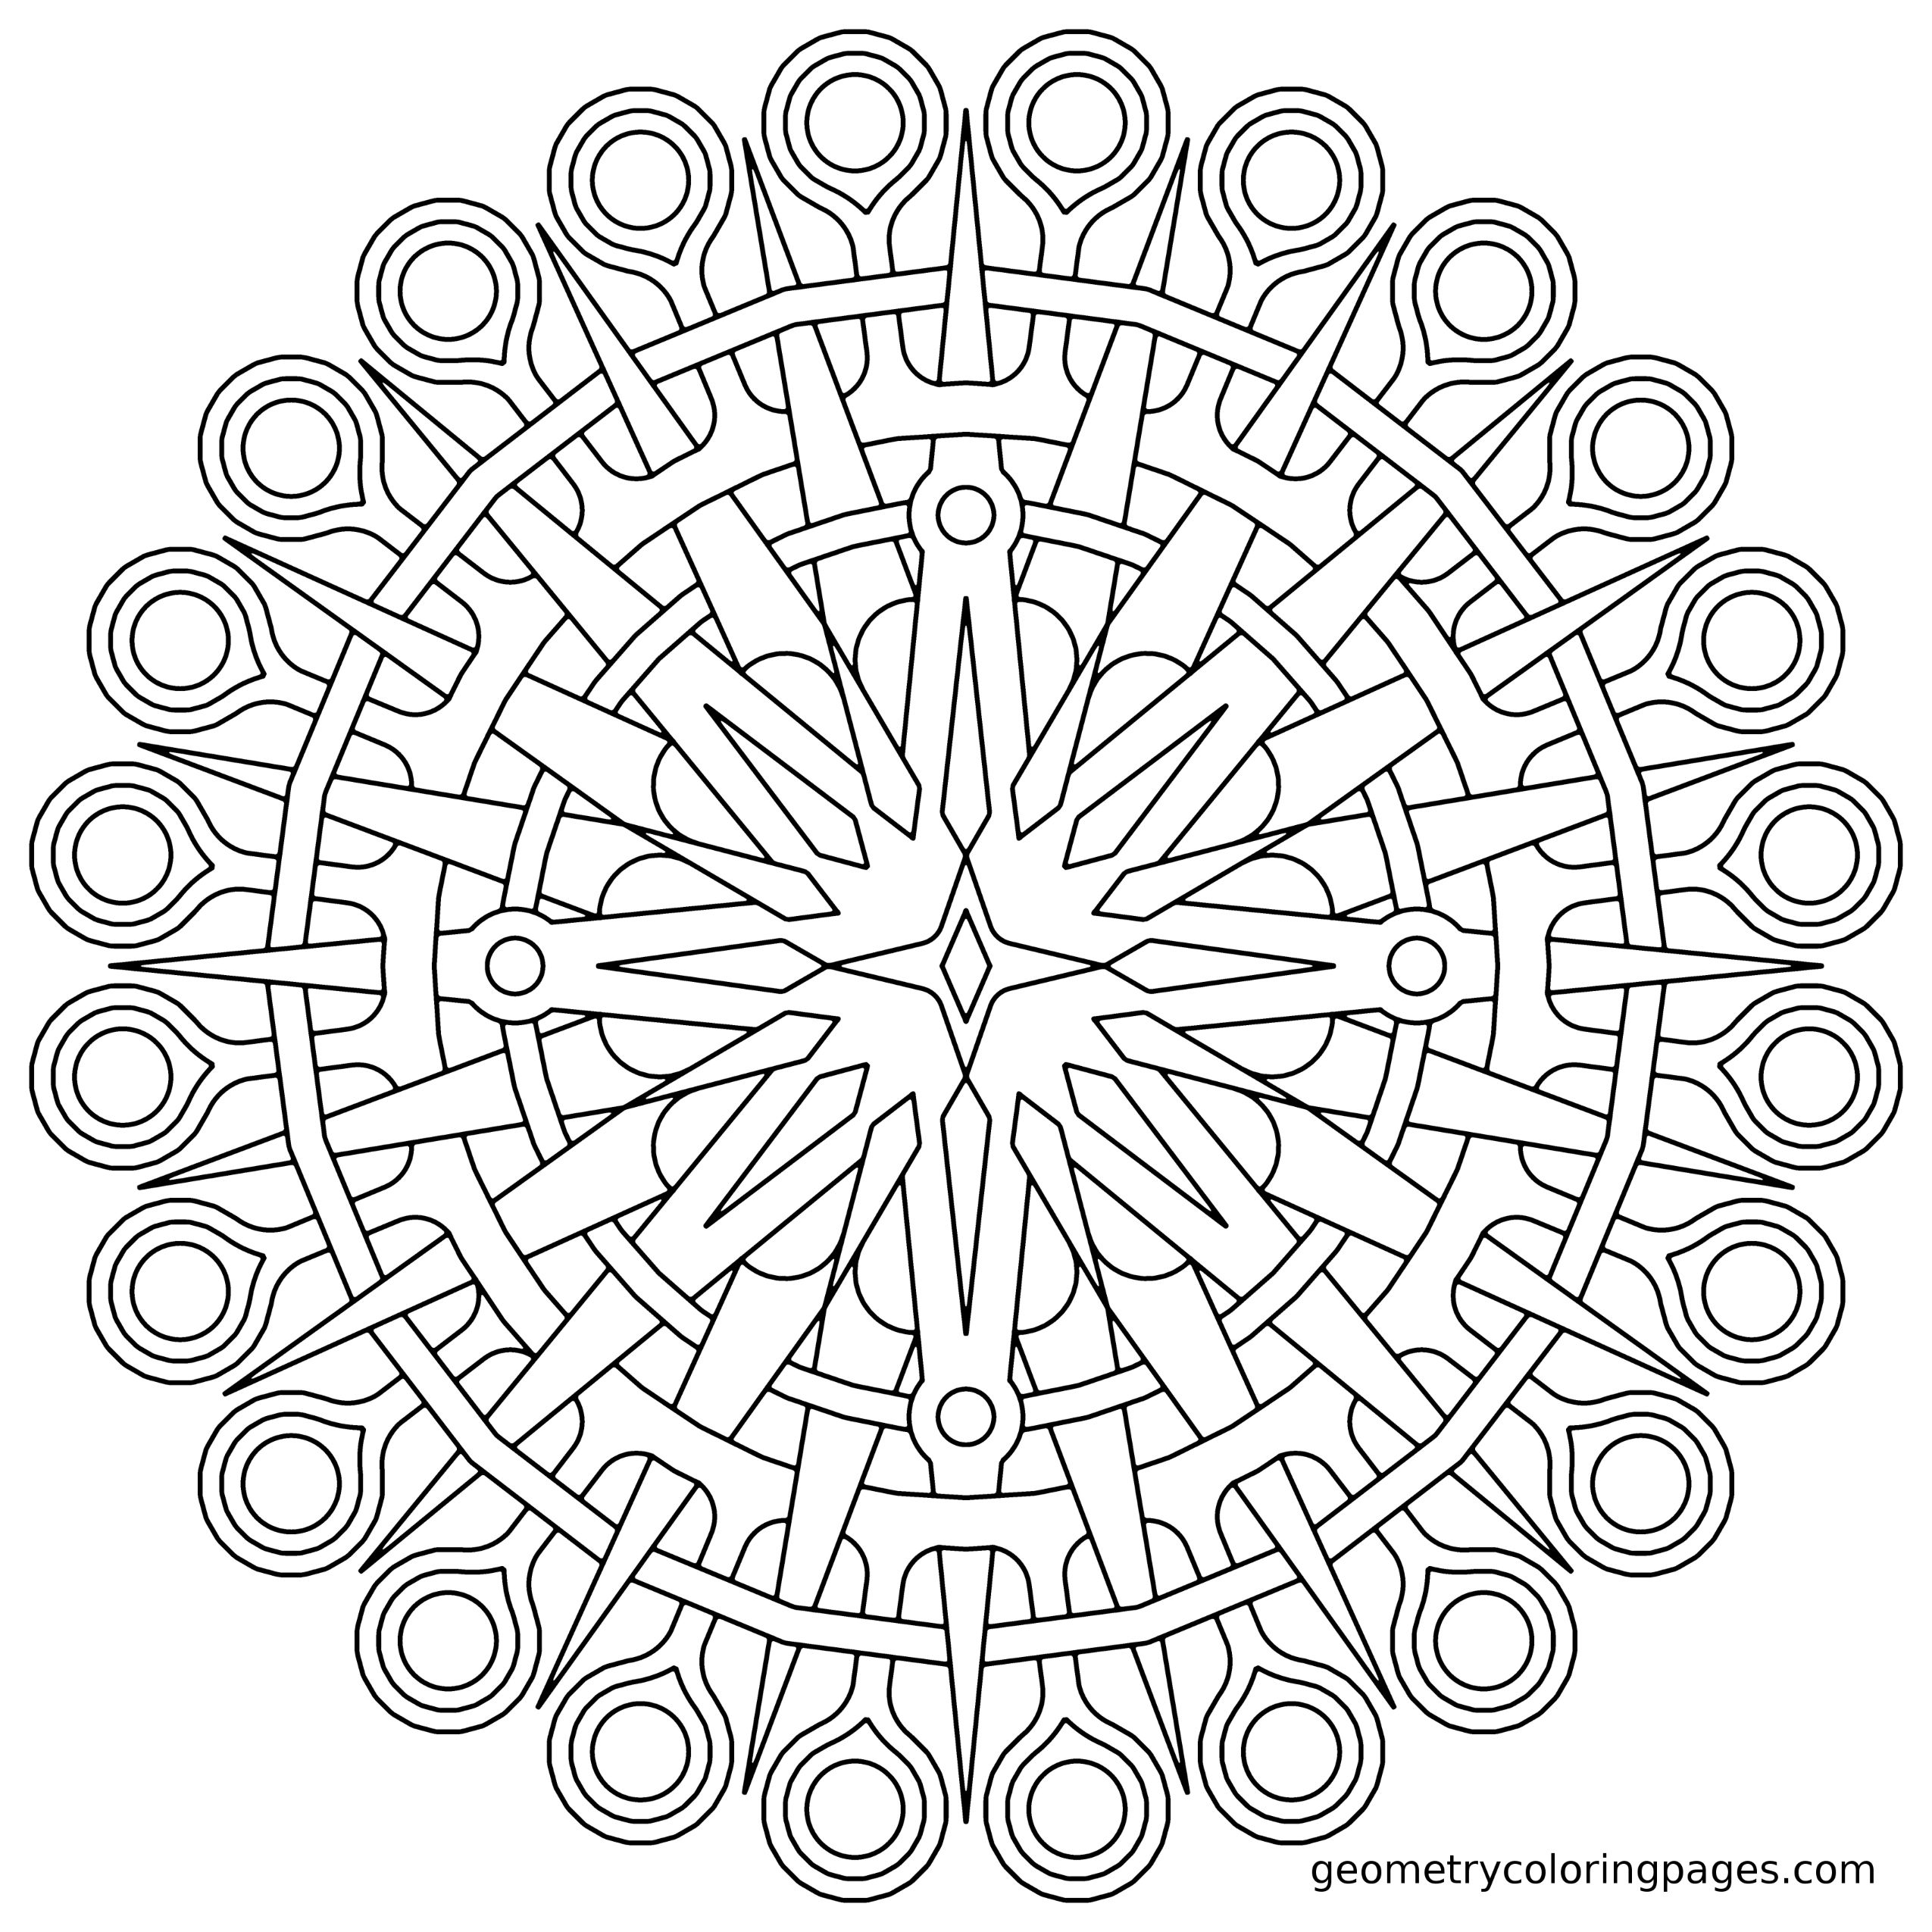 2550x2550 Promising Meditative Coloring Pages Meditation